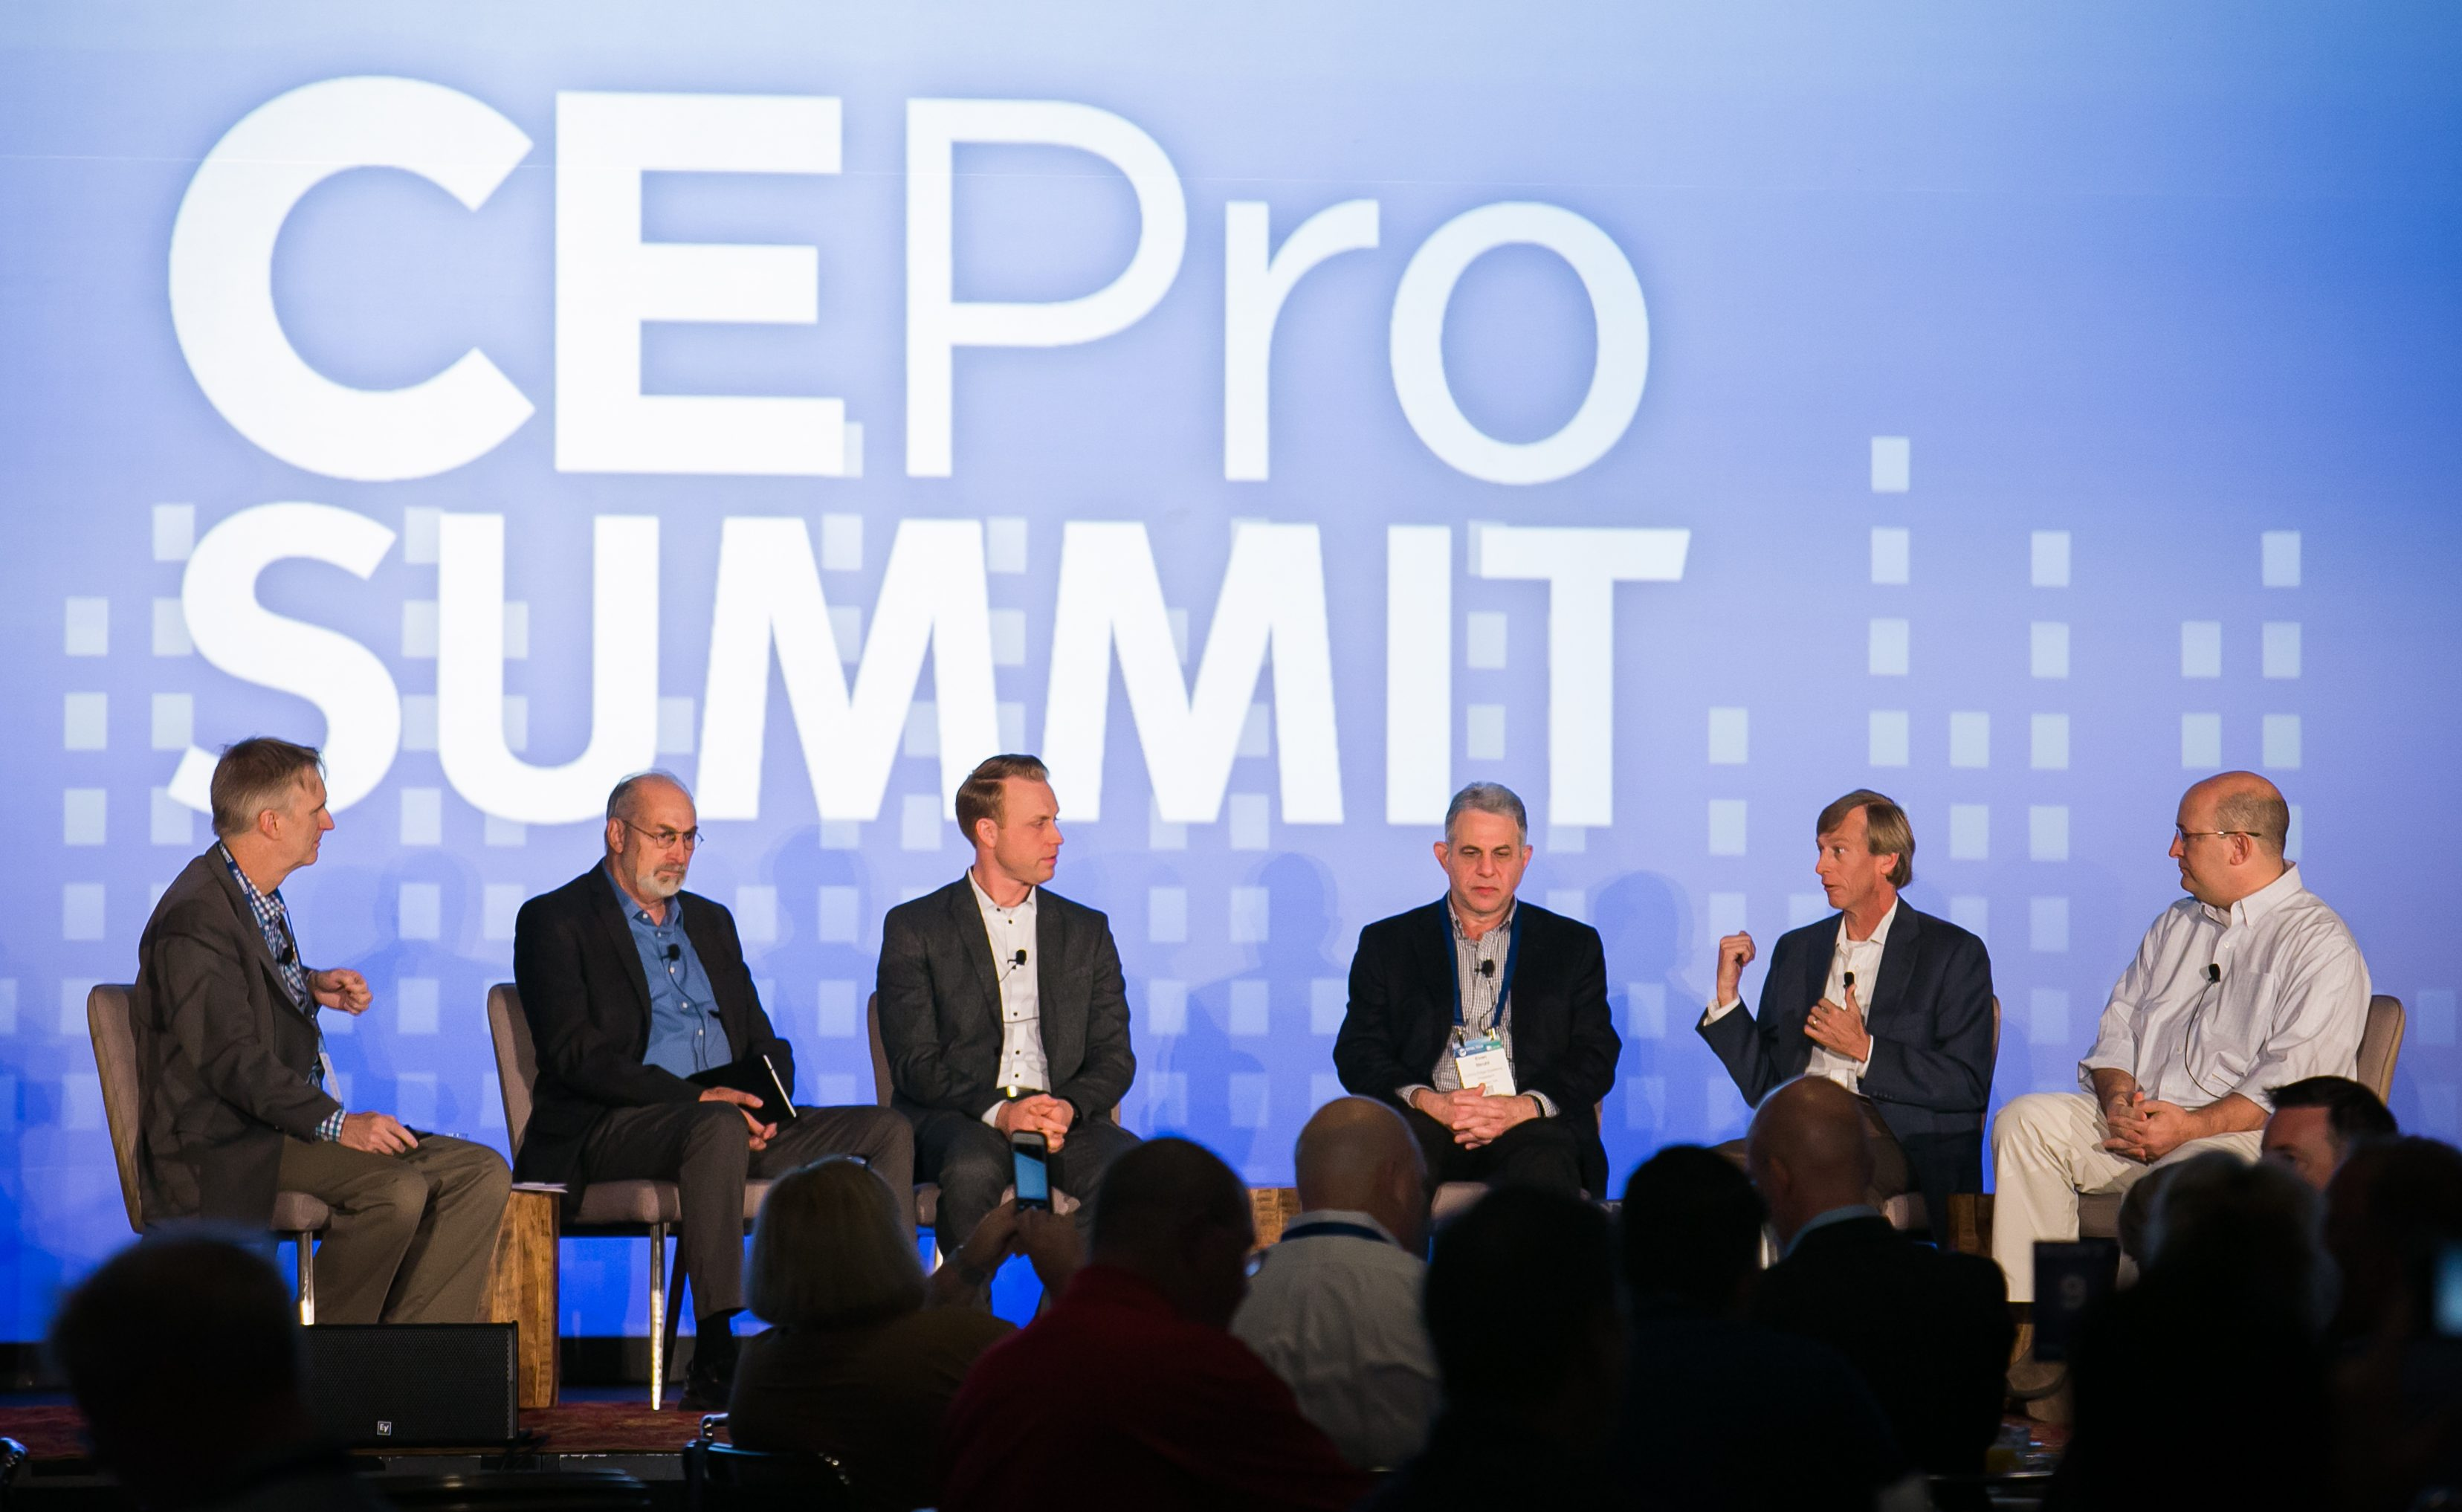 Fulmer (second from right) speaks during the Fresh Horses session at the 2017 CE Pro Summit.